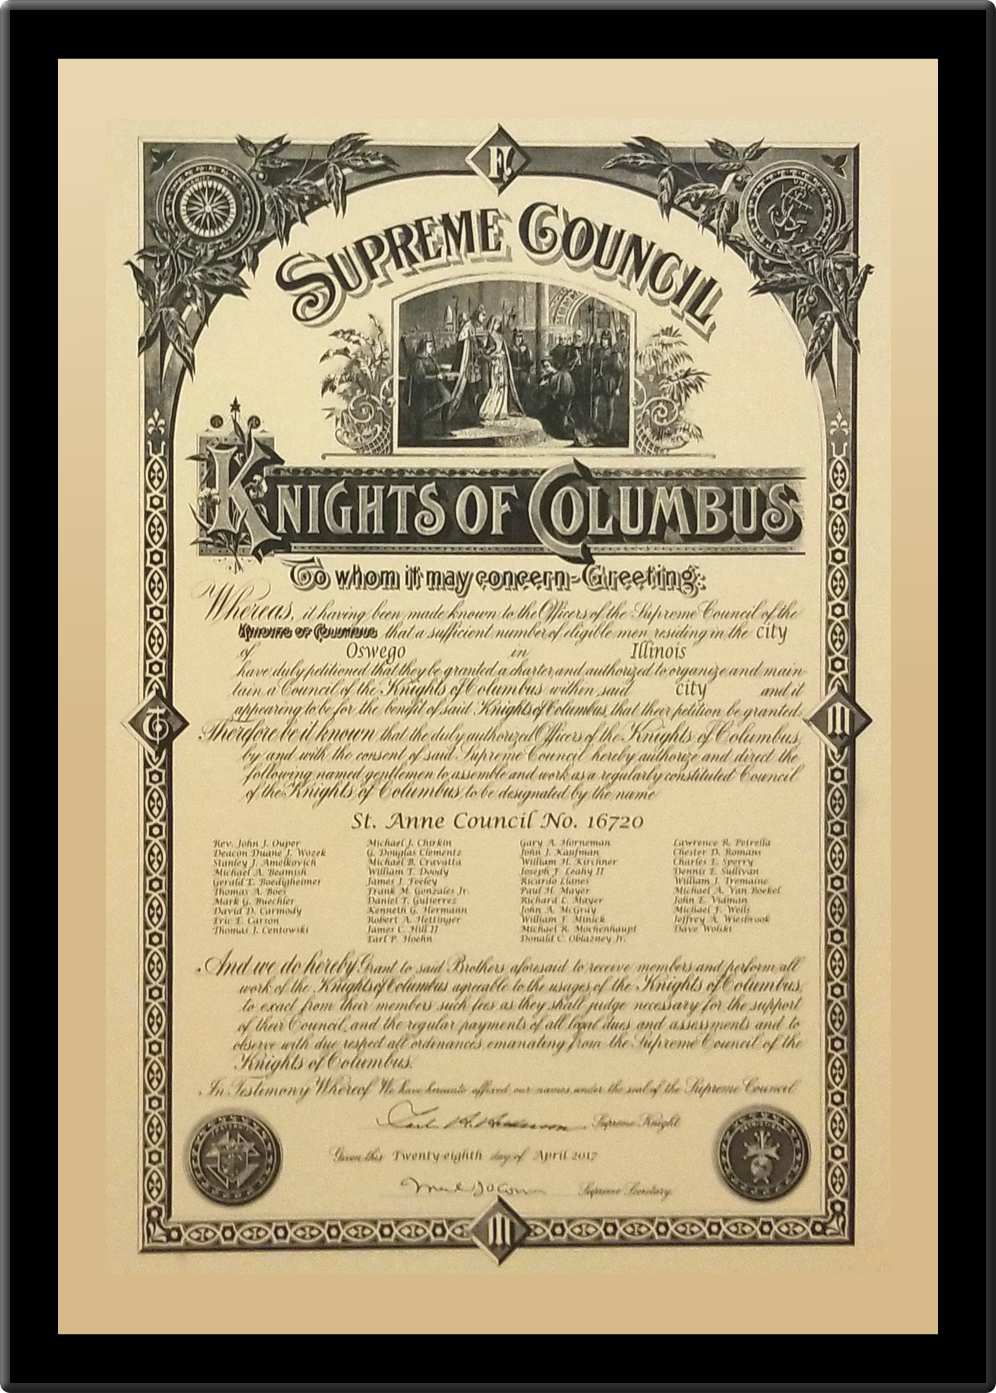 knights of columbus fourth degree membership document